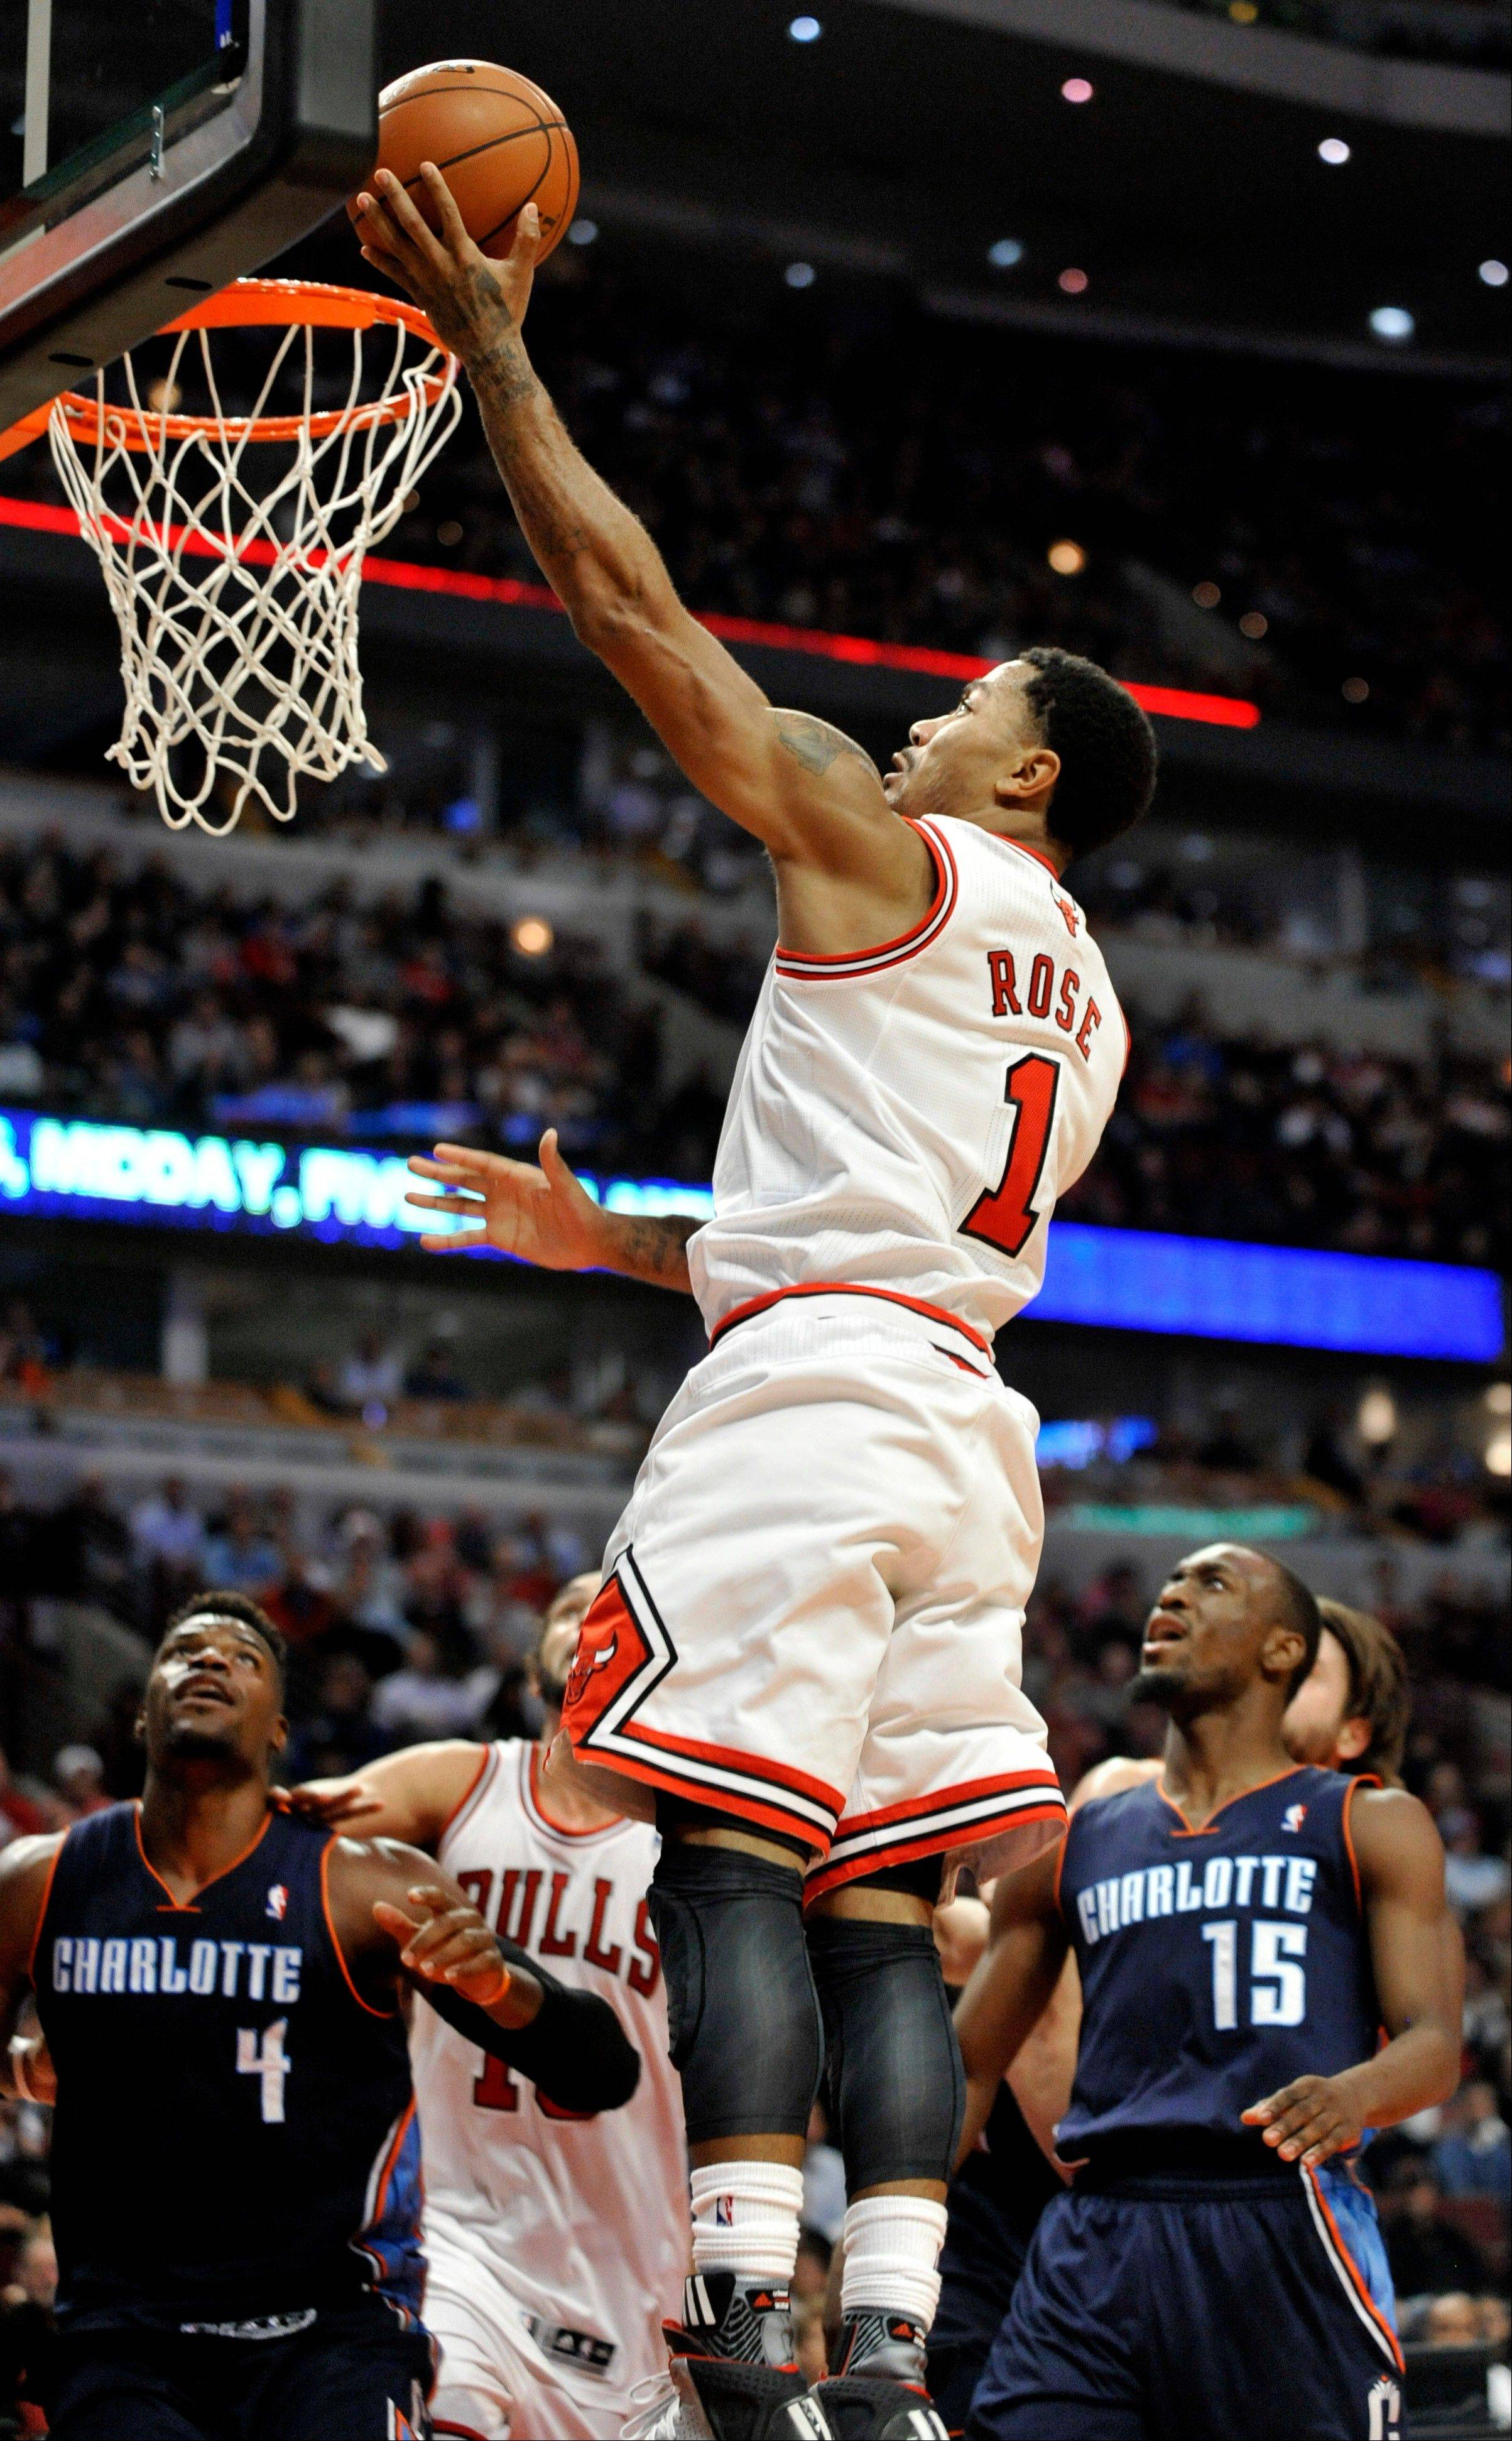 The Bulls' Derrick Rose goes up for a shot during the fourth quarter Monday night.